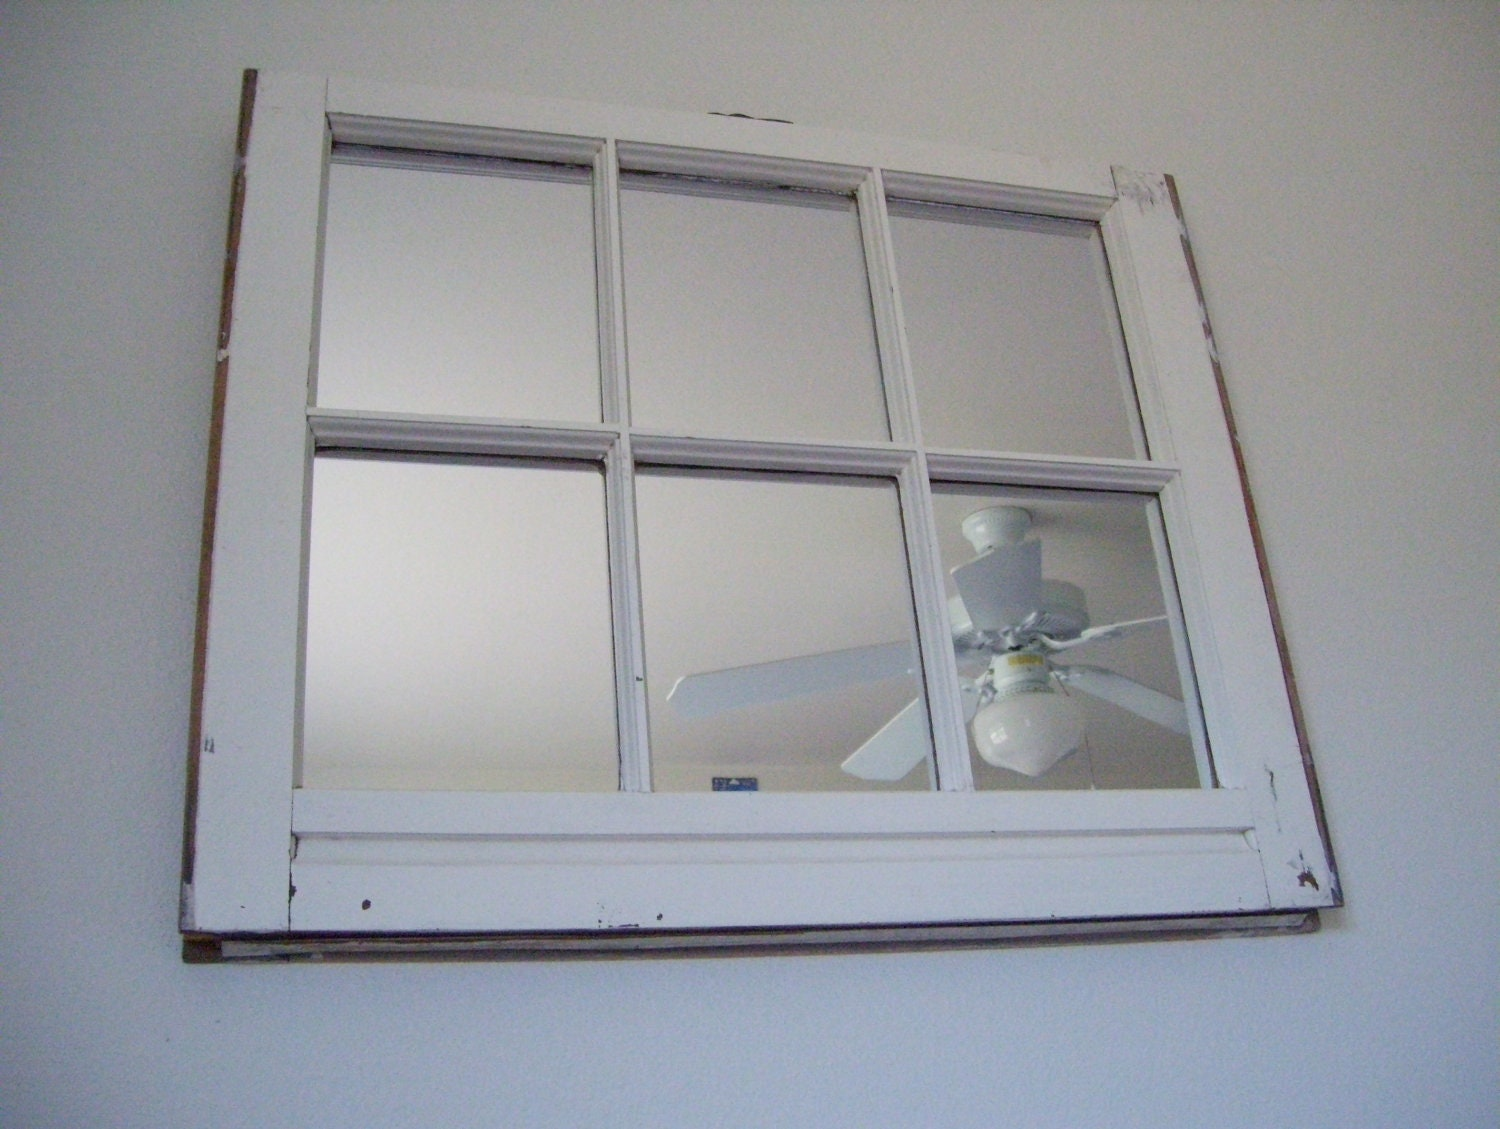 Decorative white 6 pane window frame mirror Window pane mirror